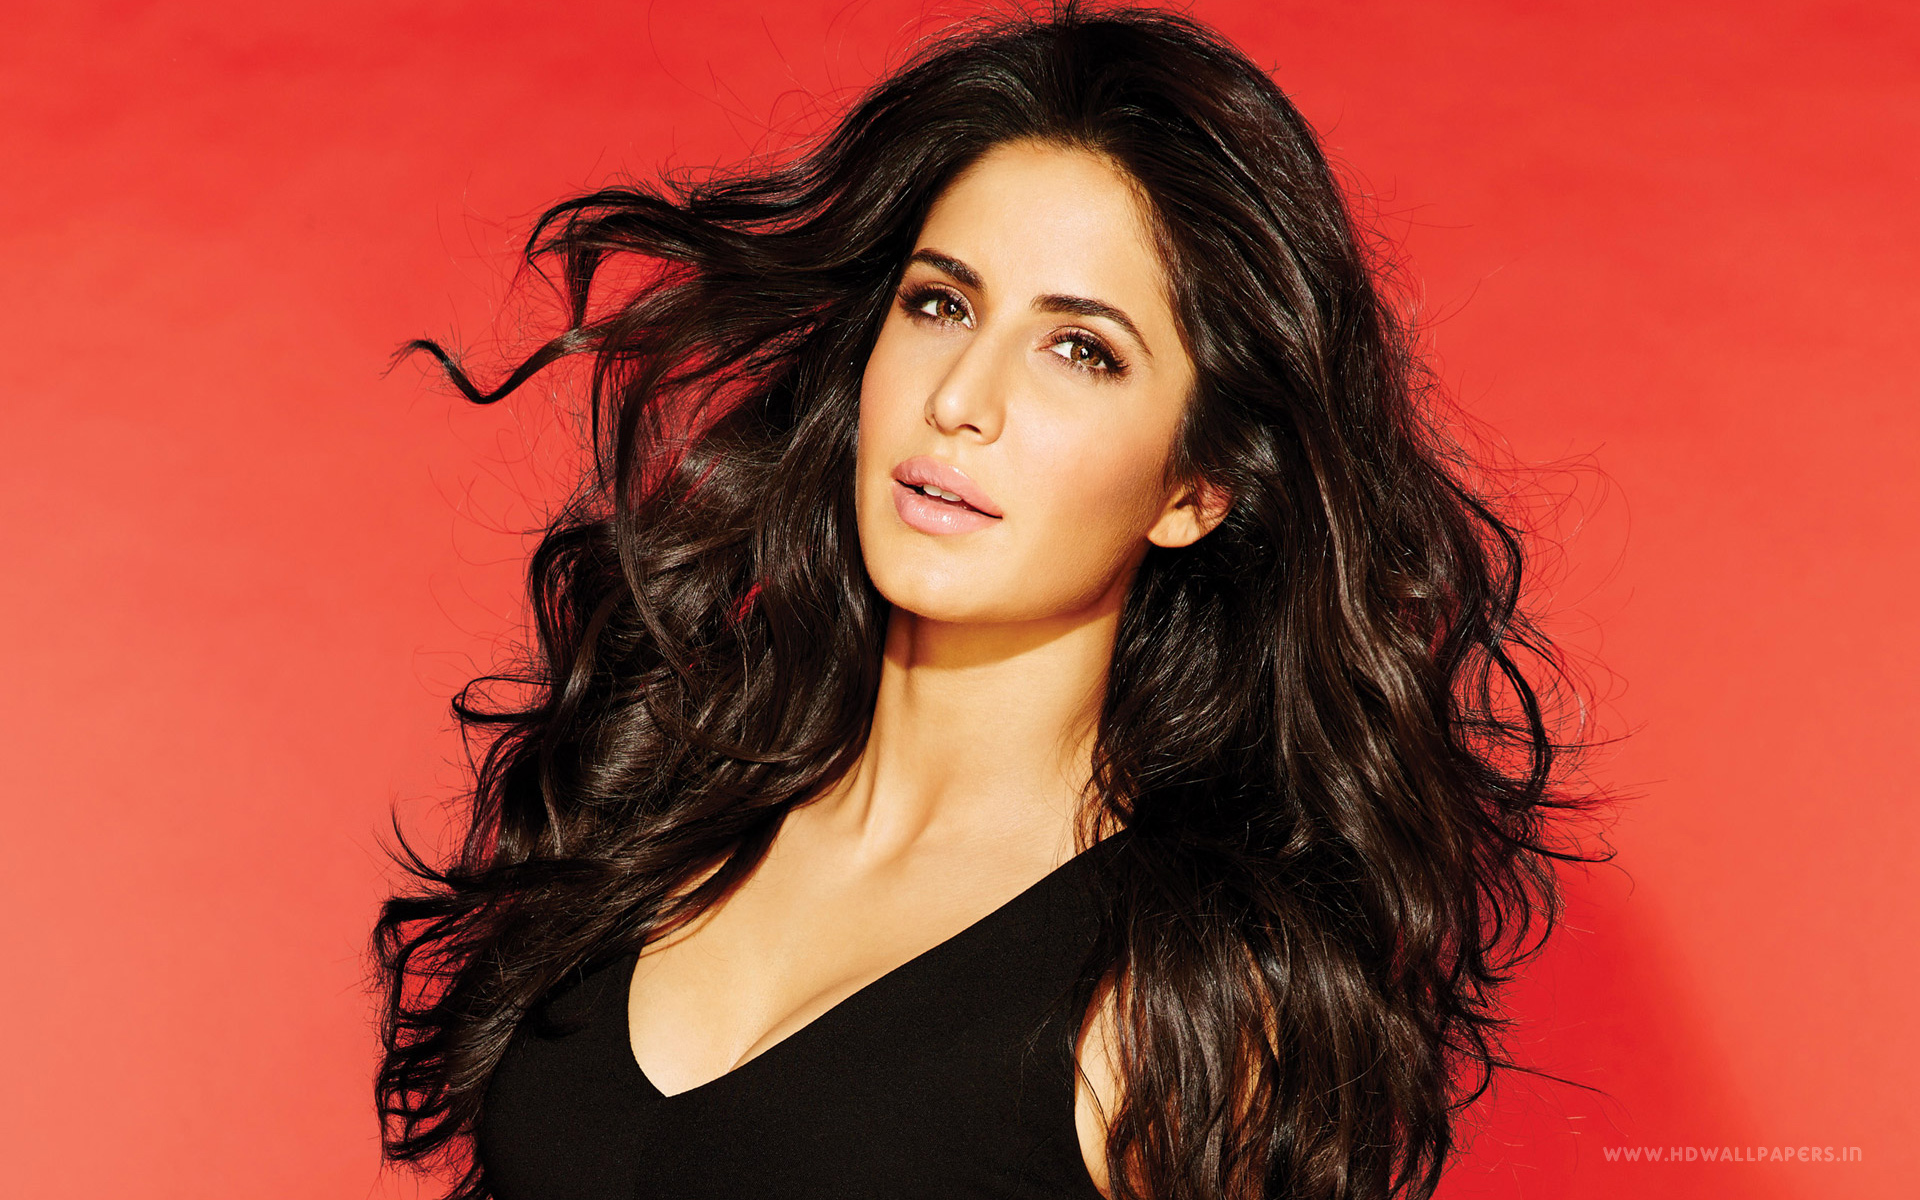 HD Wallpapers Katrina Kaif 36